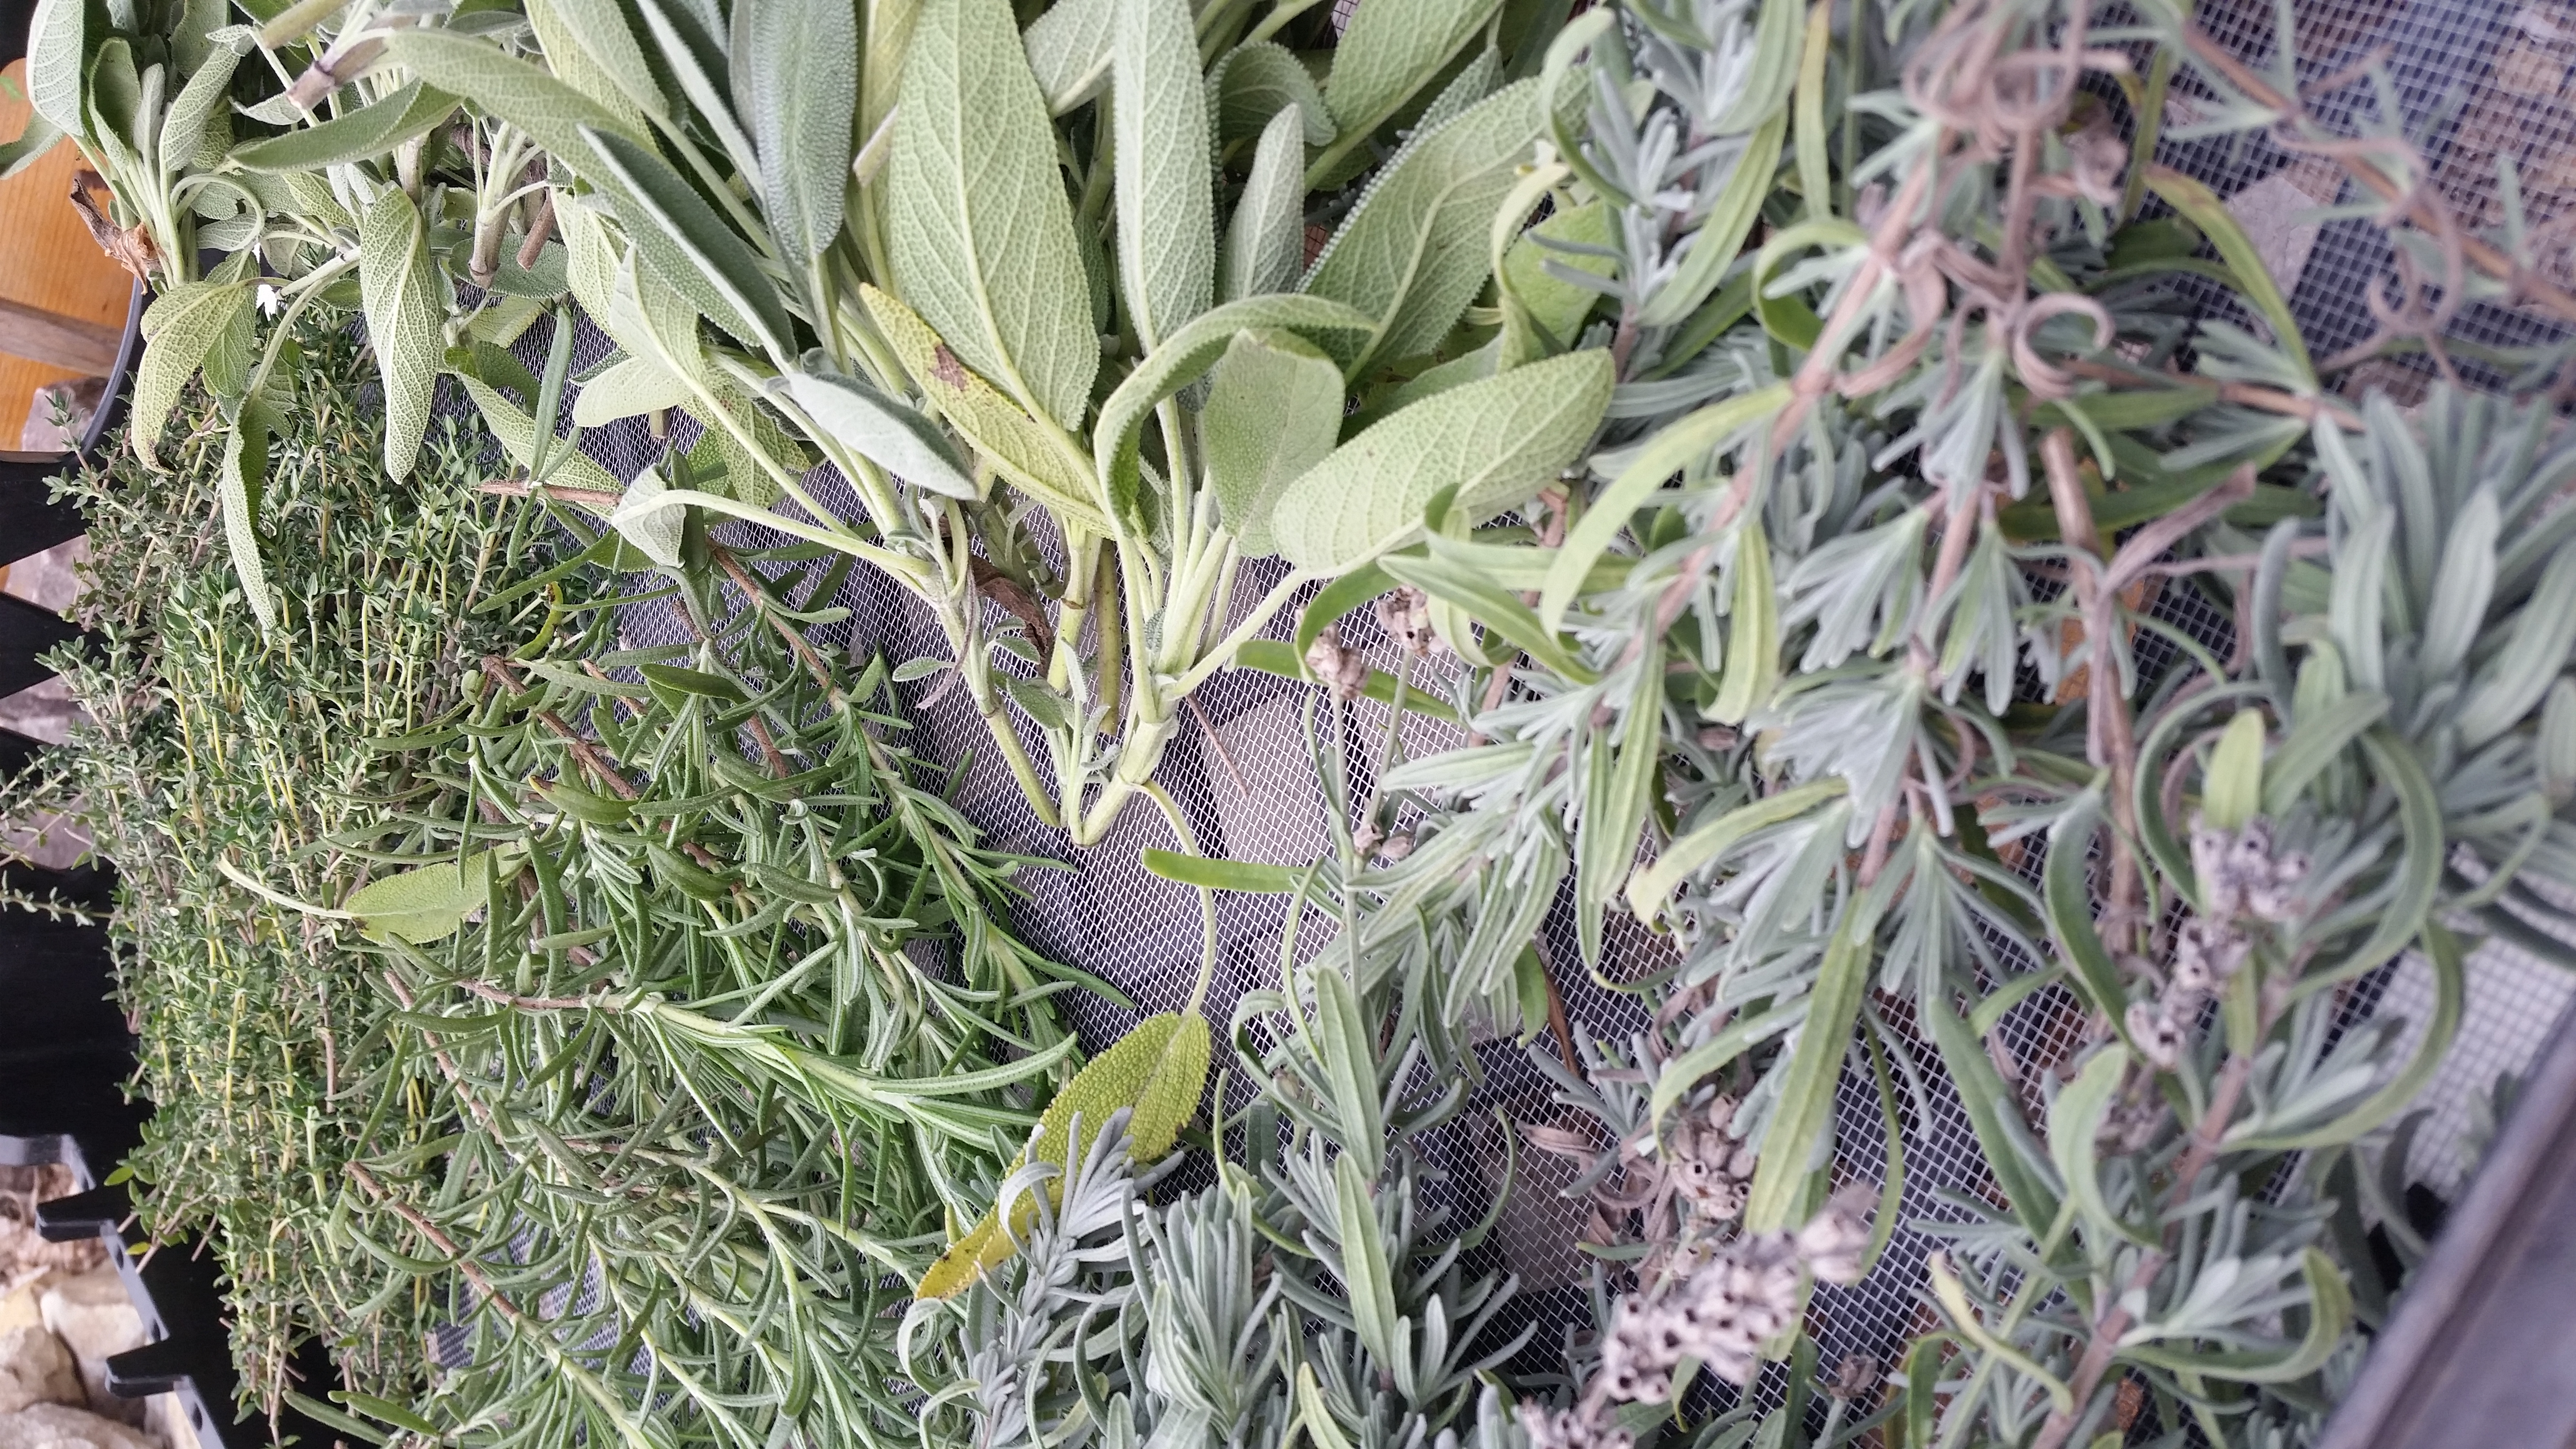 herbs picked to dry, 2020